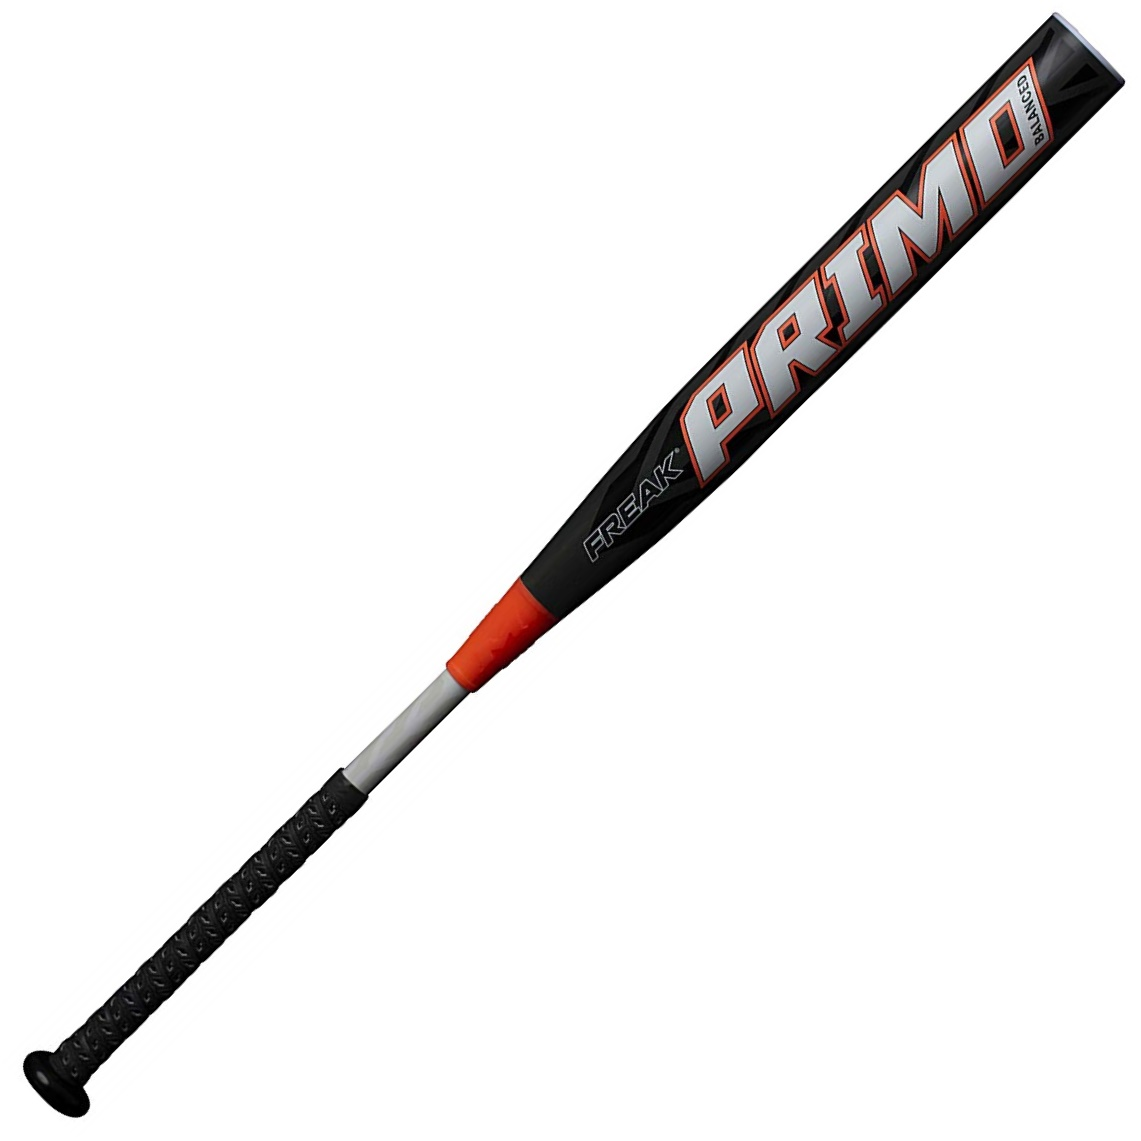 miken-freak-primo-balanced-asa-slowpitch-softball-bat-14-barrel-34-in-28-oz MPMOBA-3-28 Miken 658925043819 Mikens breakthrough tetra-core tech optimizes performance by utilizing an inner core